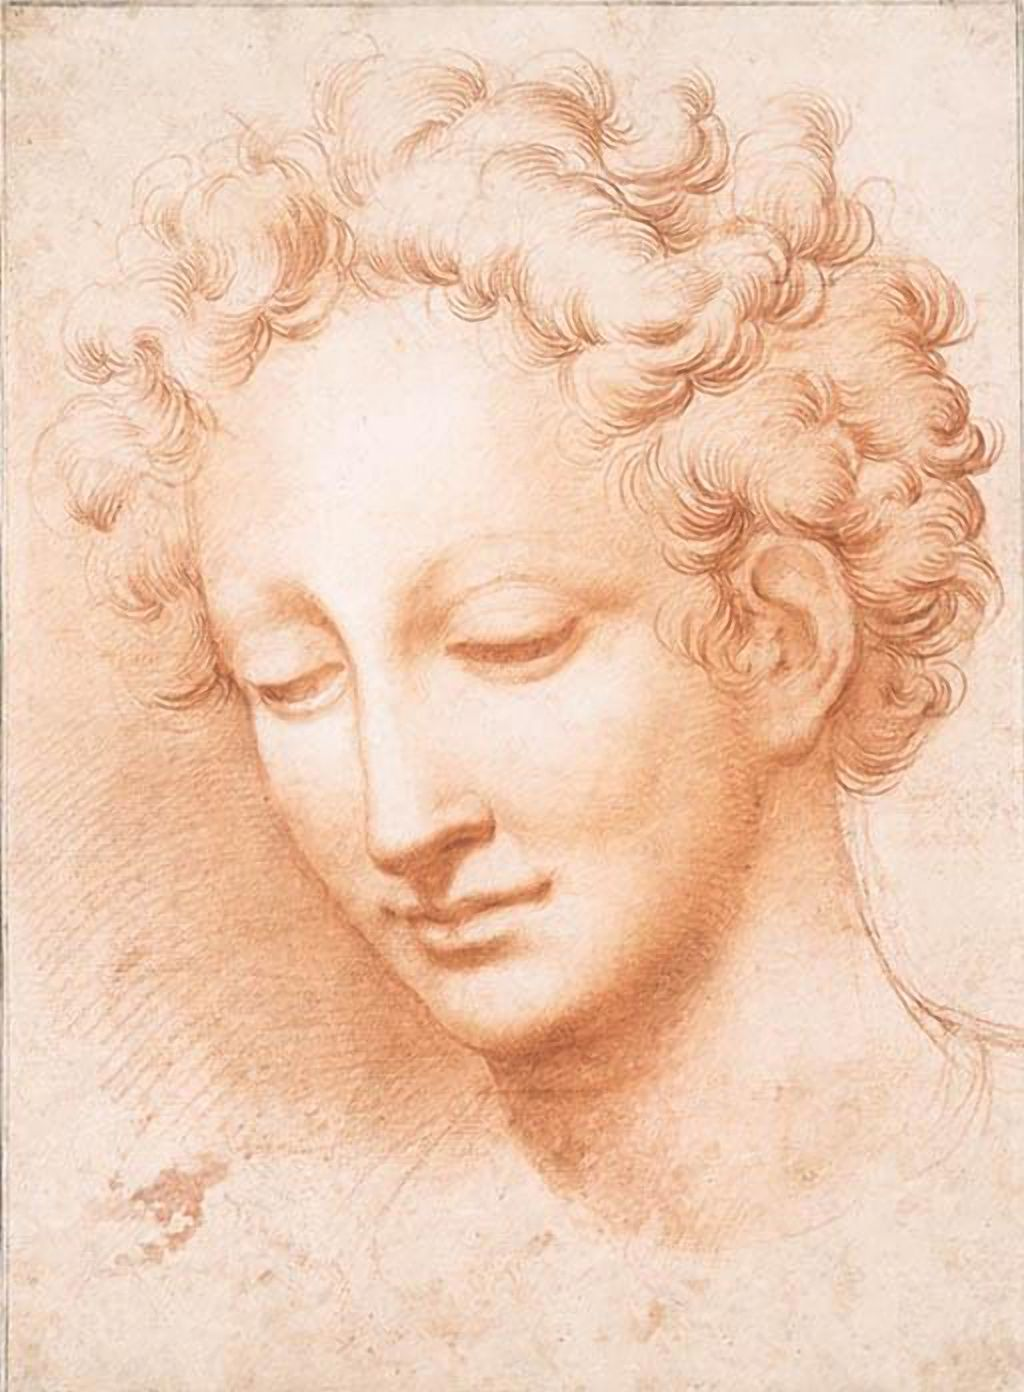 Antonio Campi (1524-1587) The head of a man, looking down (323 x 236 mm)